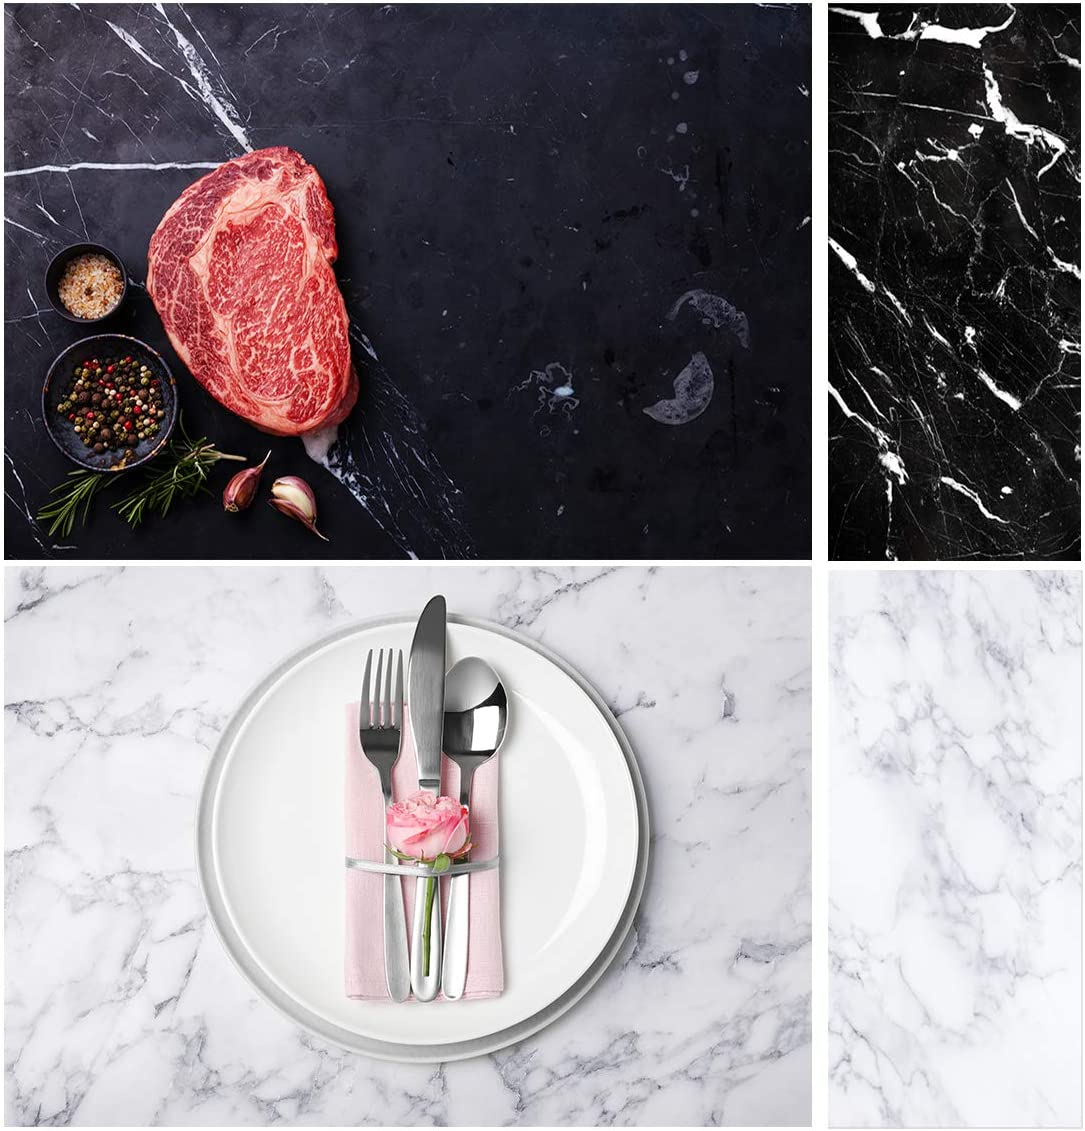 Allenjoy 34.4x15.7in Double Sided Marble Photography Background 2 in 1 Texture Pattern Waterproof Paper Tabletop Backdrop Food Jewelry Cosmetics Makeup Small Product Props Professional Photo Studio